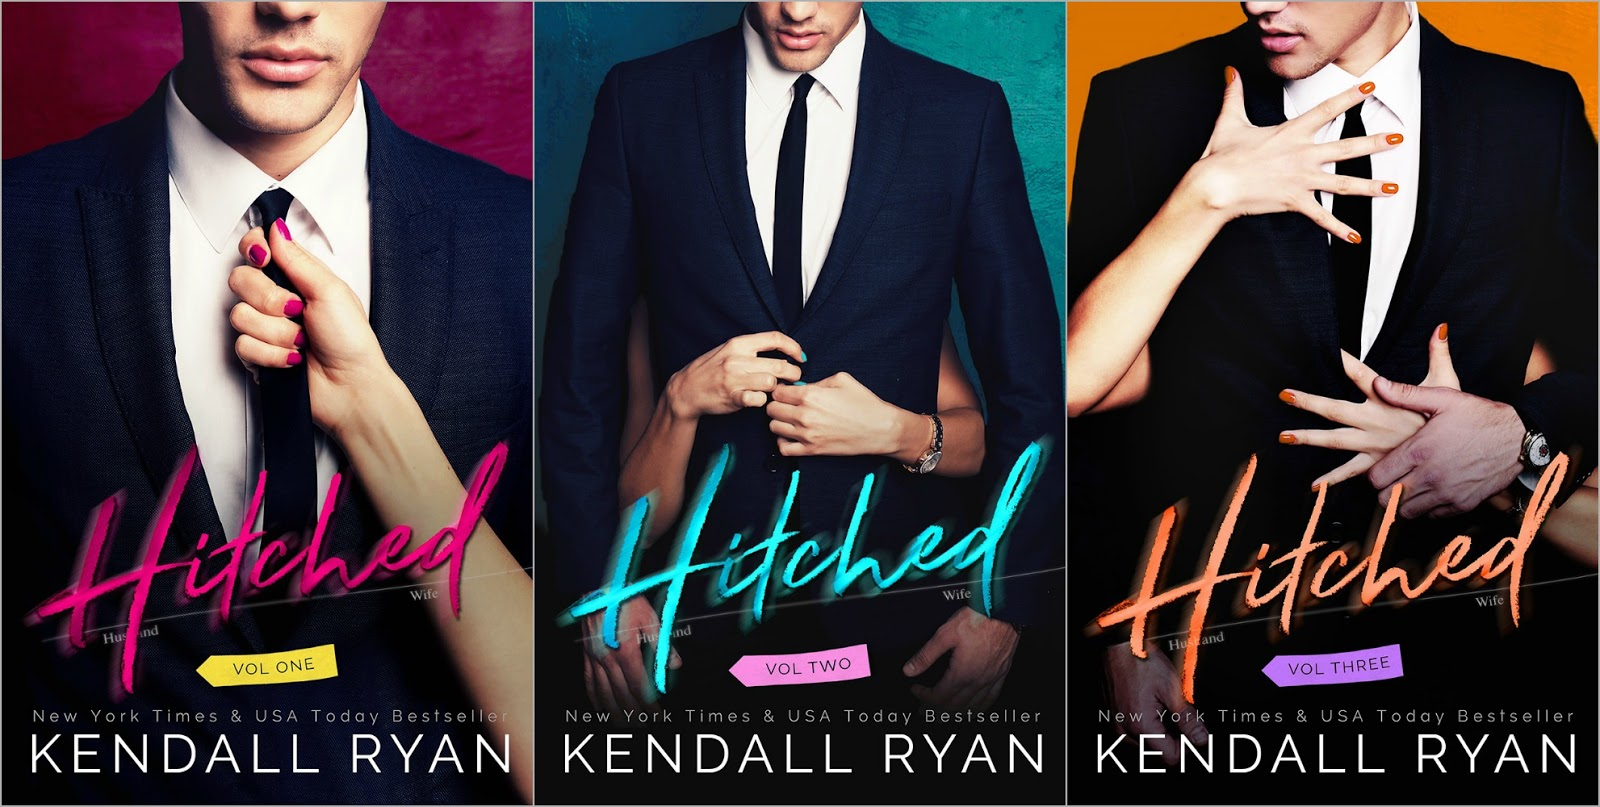 Kendall Ryan Libros Eye In Bookland Review Tour Hitched Vol 1 Imperfect Love 1